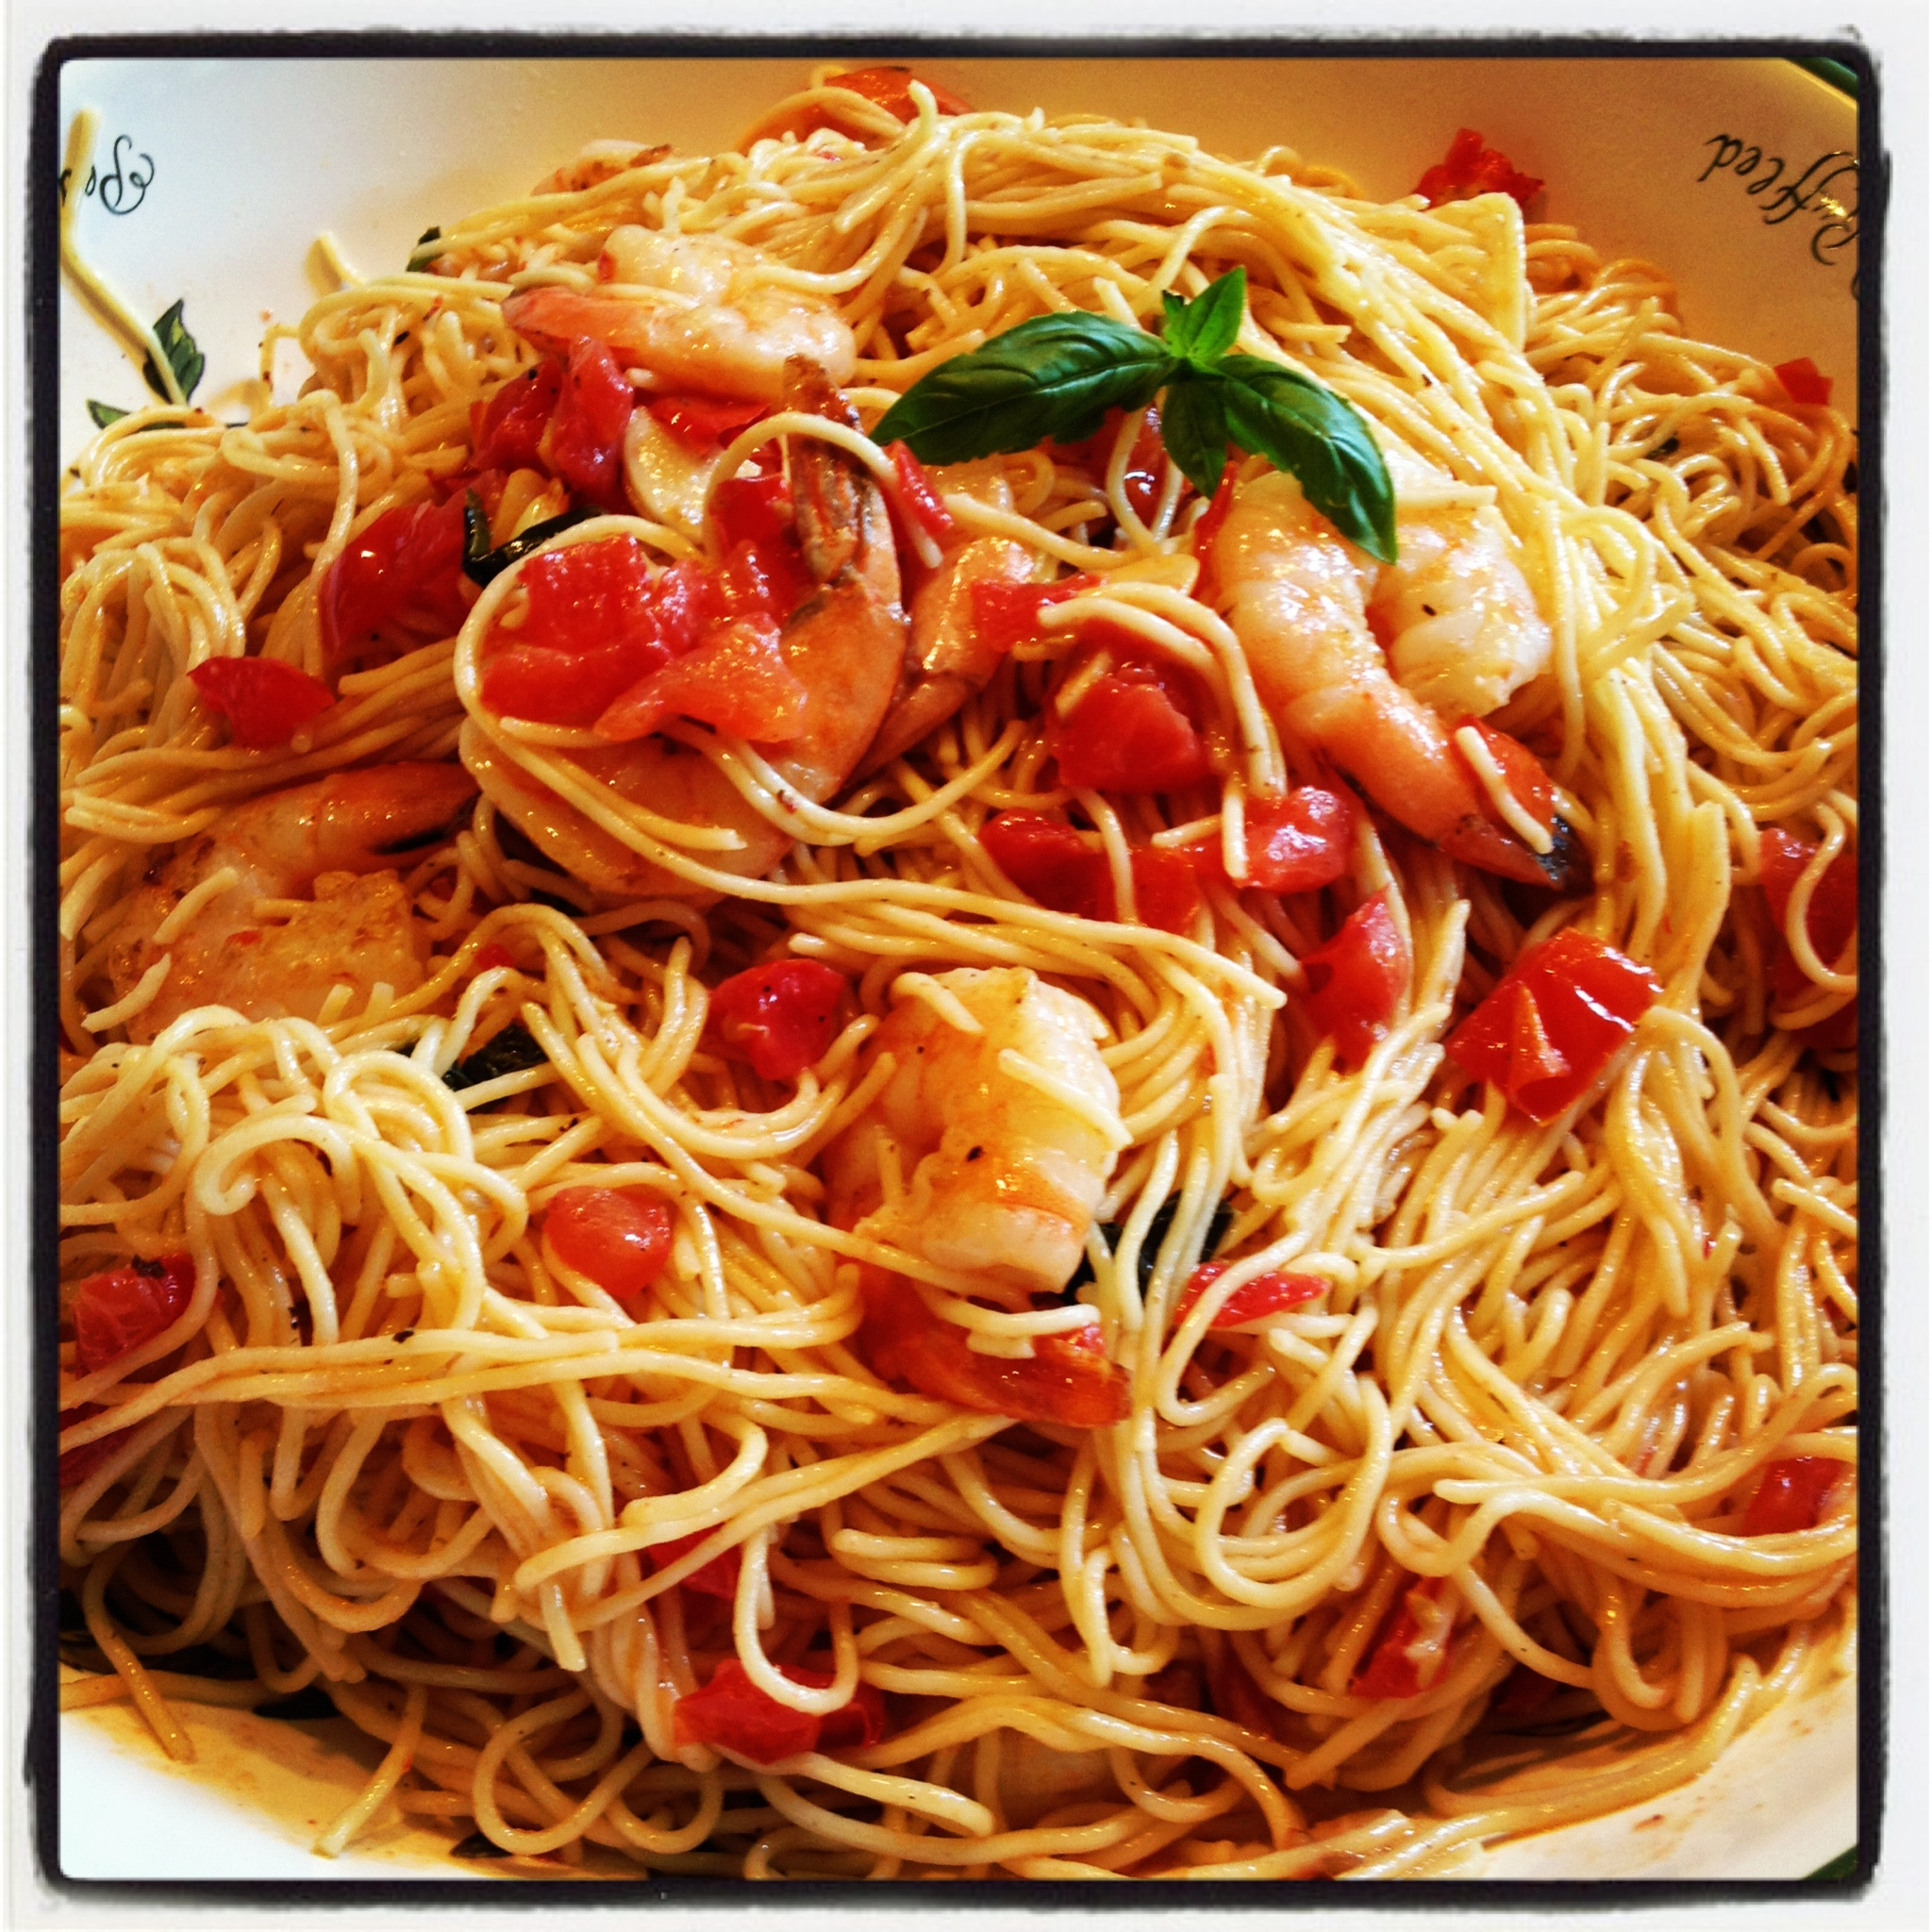 Shrimp with a Fresh Plum Tomato Sauce over Angel Hair Pasta